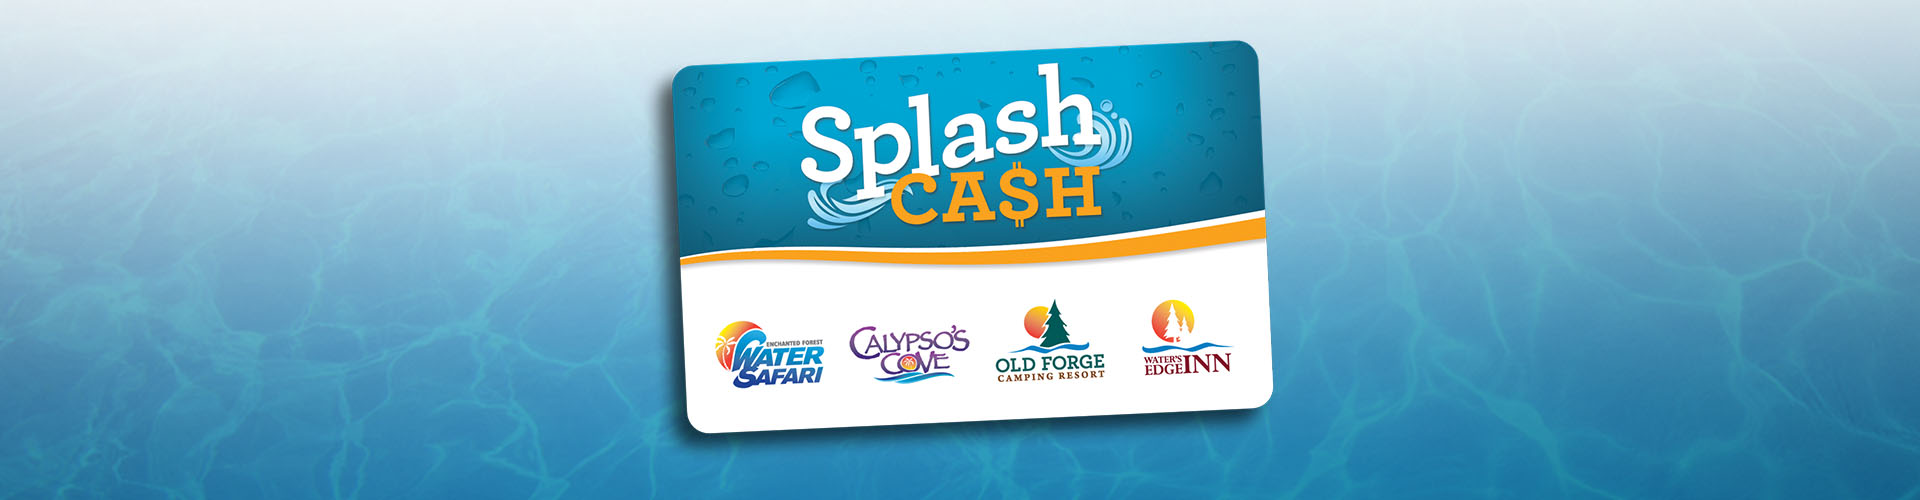 Splash Cash card with water background